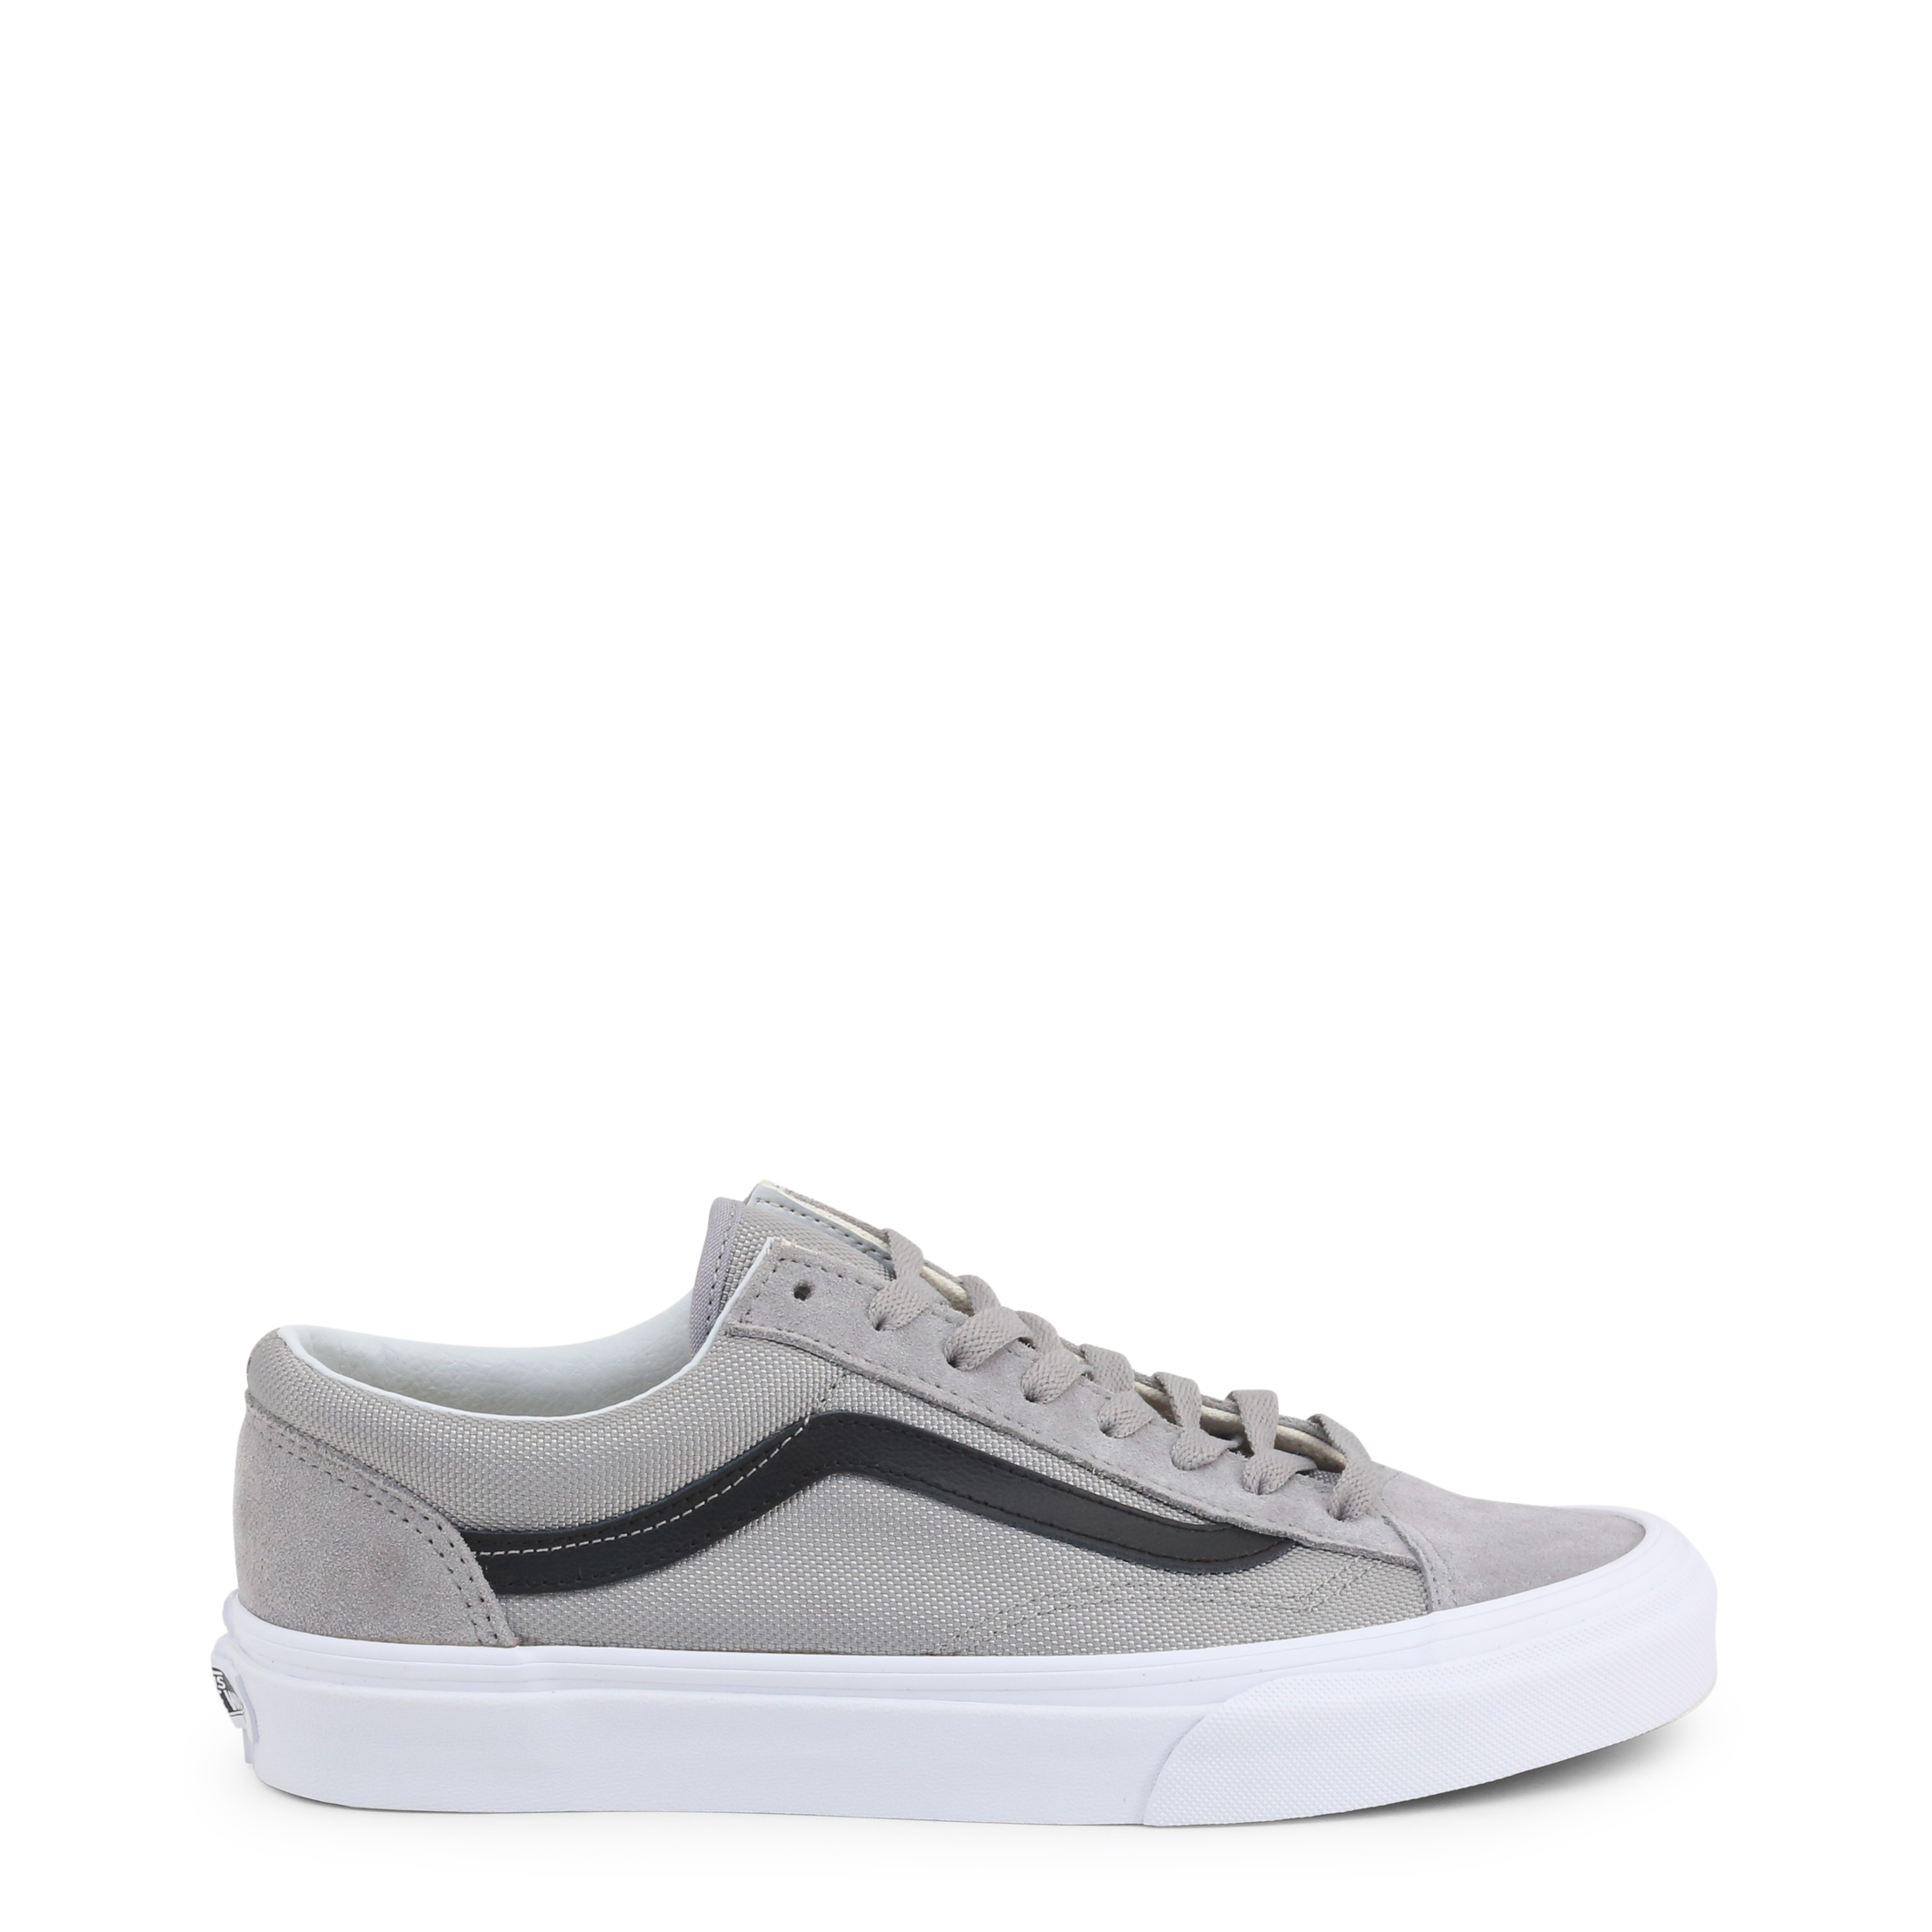 Chaussures Vans – STYLE36